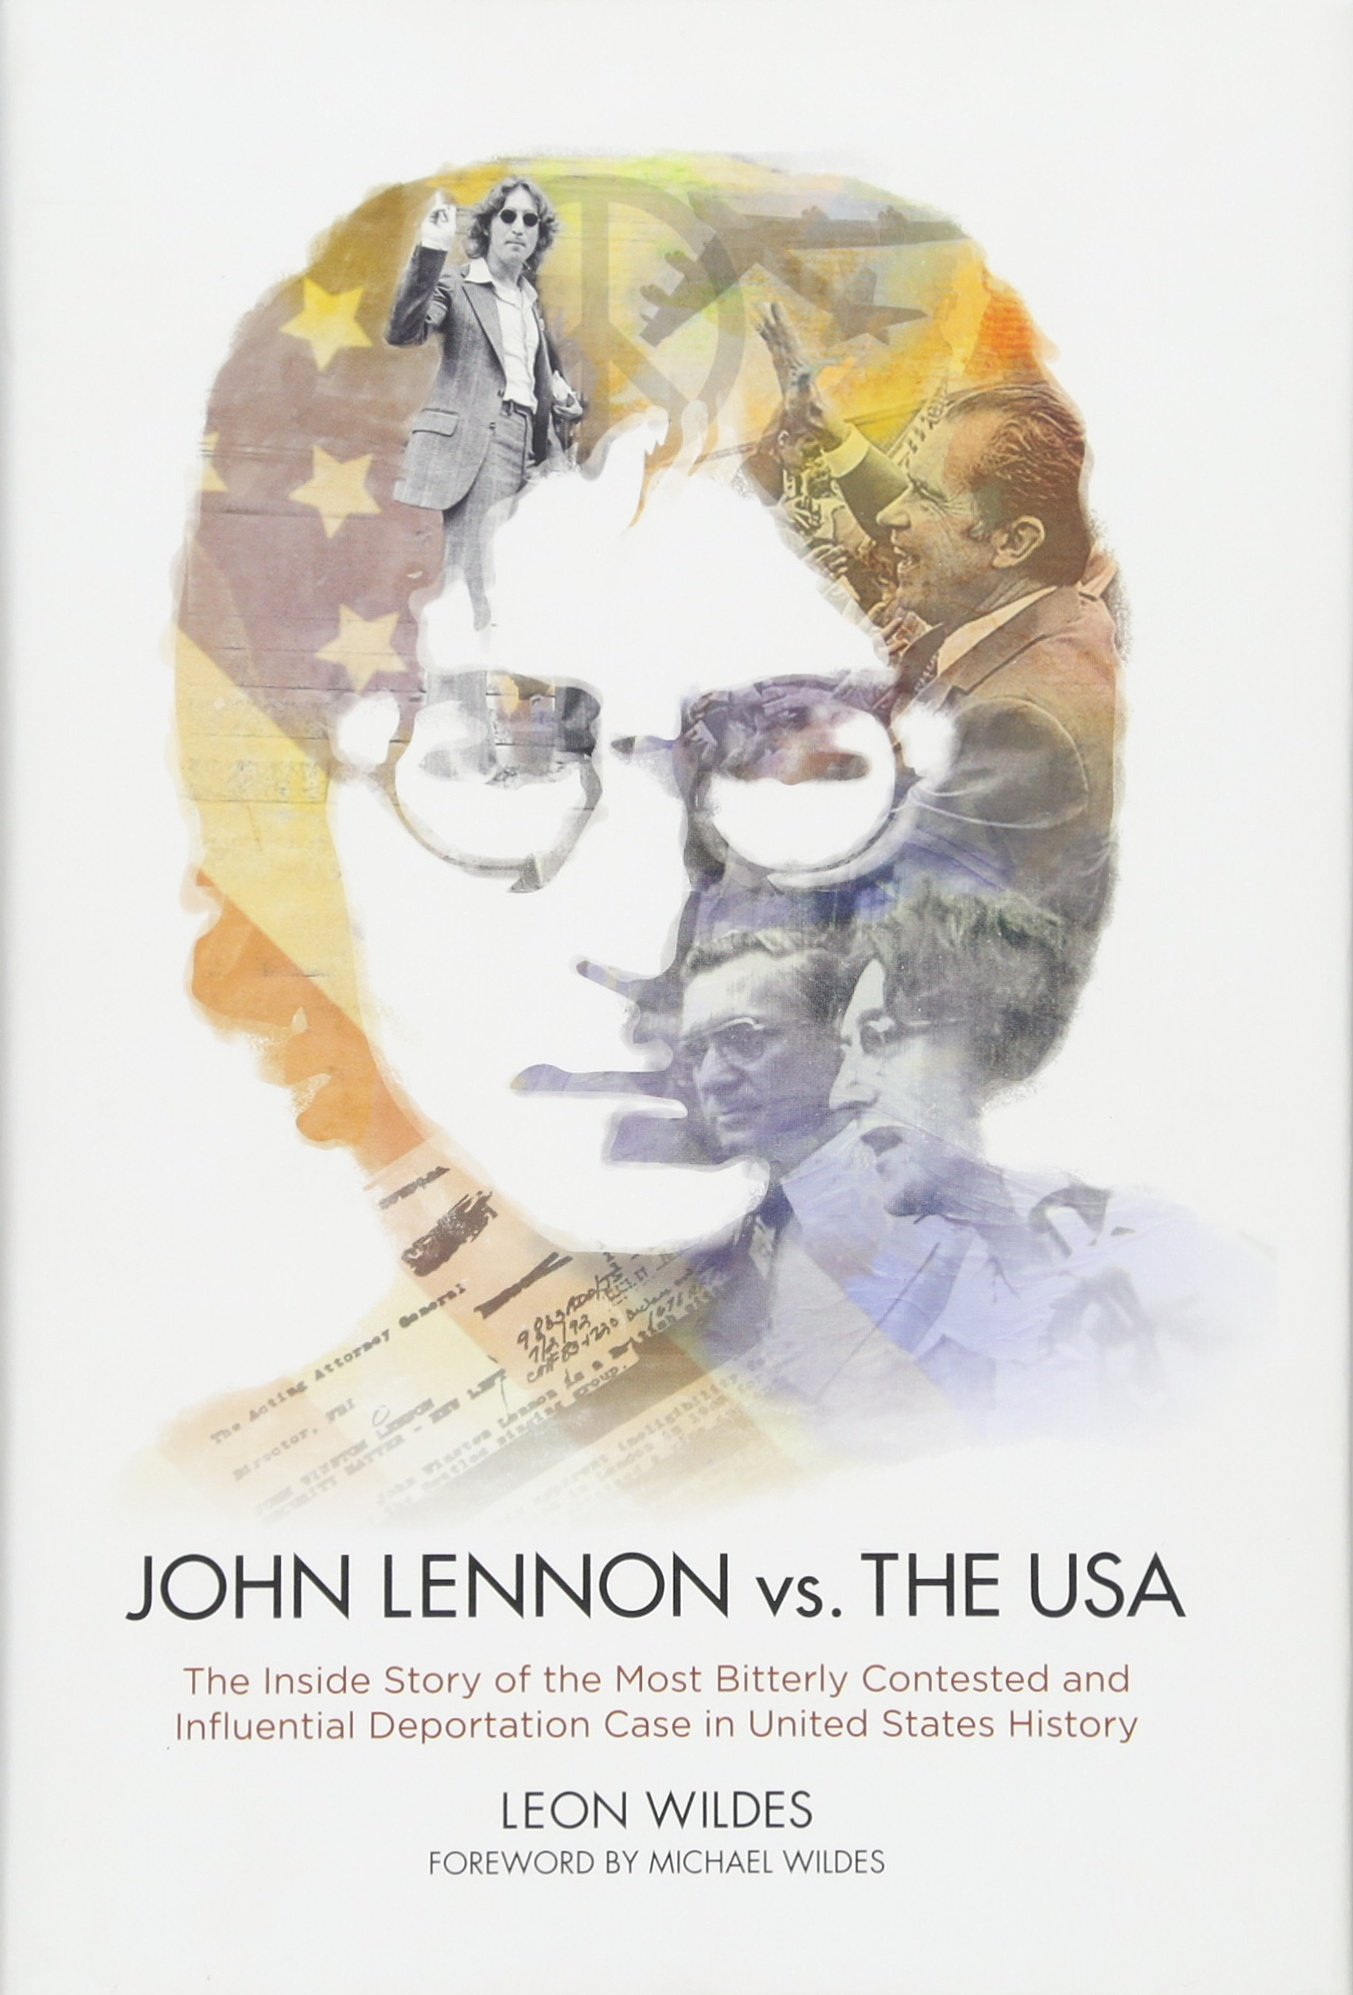 Amazon Com John Lennon Vs The U S A The Inside Story Of The Most Bitterly Contested And Influential Deportation Case In United States History 0884409094897 Wildes Leon Wildes Michael Books